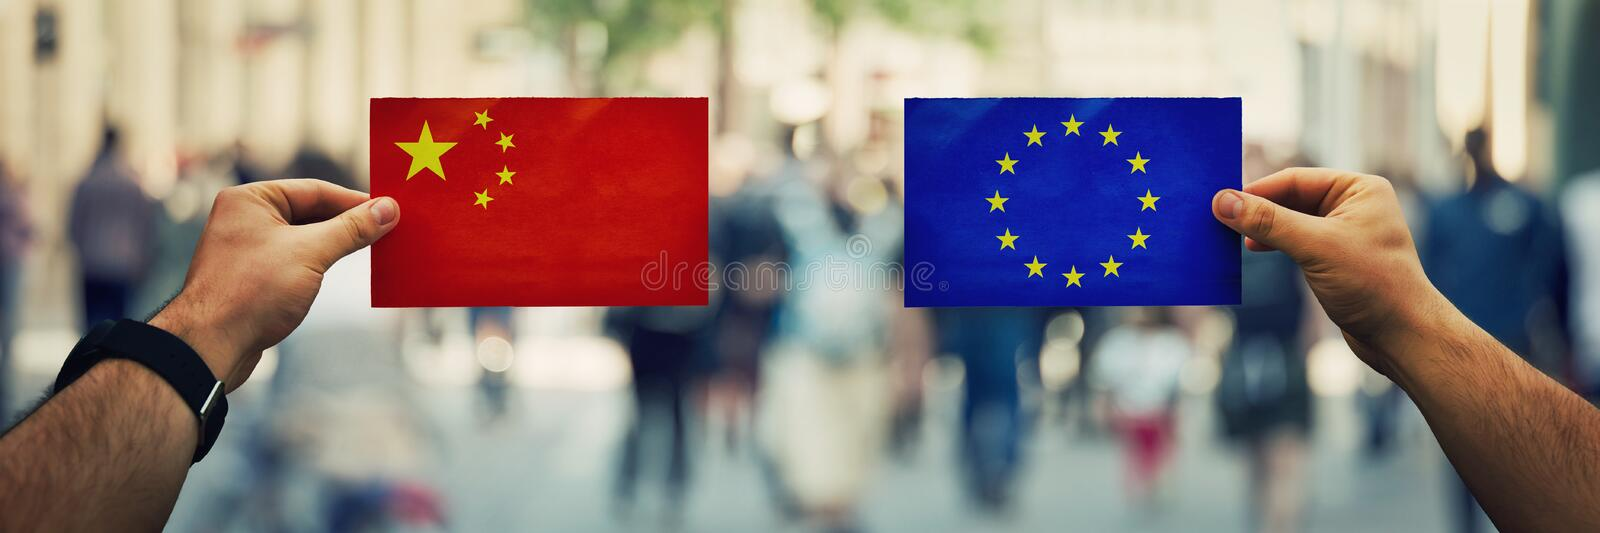 China vs eu royalty free stock photo